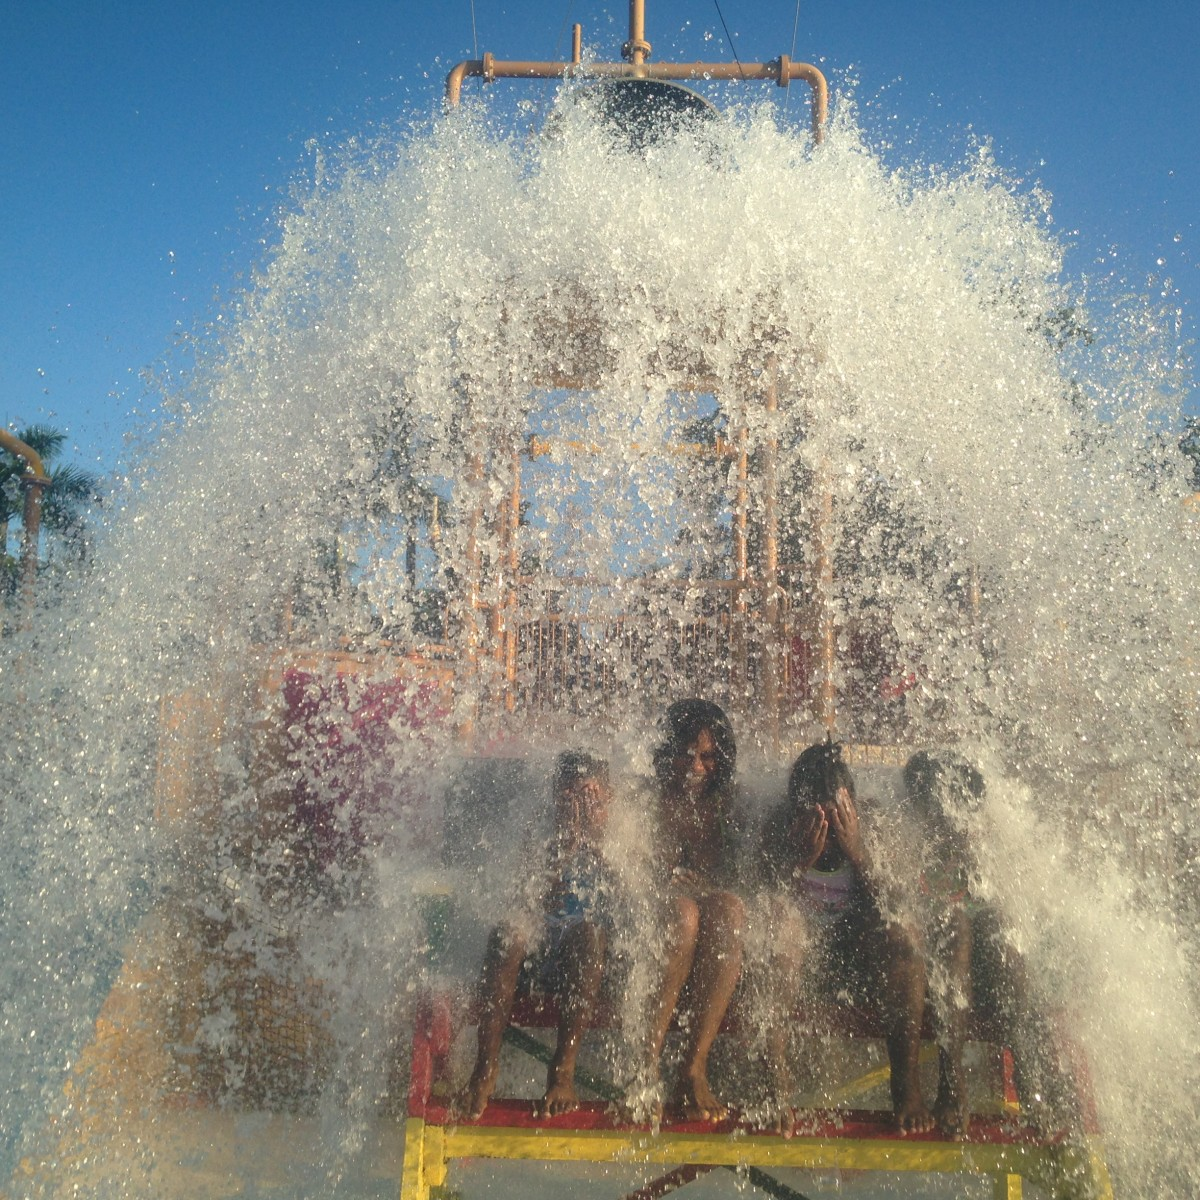 The exhilarating moment when the water bucket empties at Beaches, Negril's Pirate Waterpark